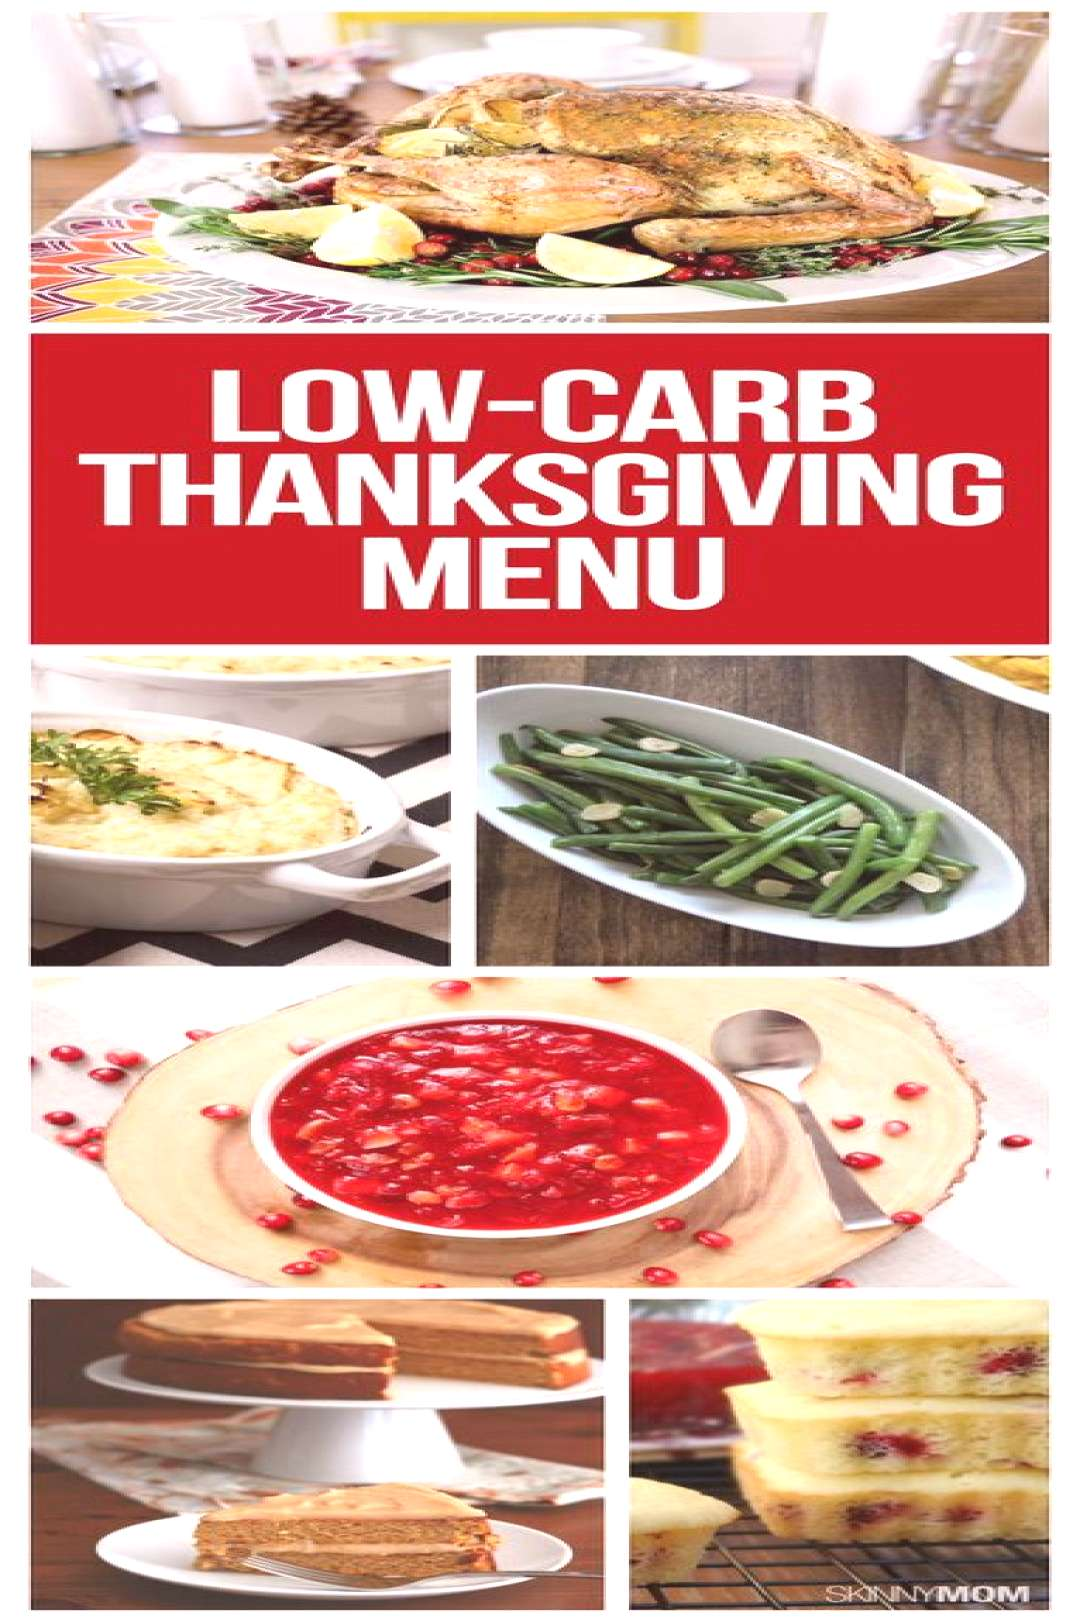 Looking for a HEALTHY Thanksgiving dinner? This Thanksgiving menu is full of low-carb holiday recip